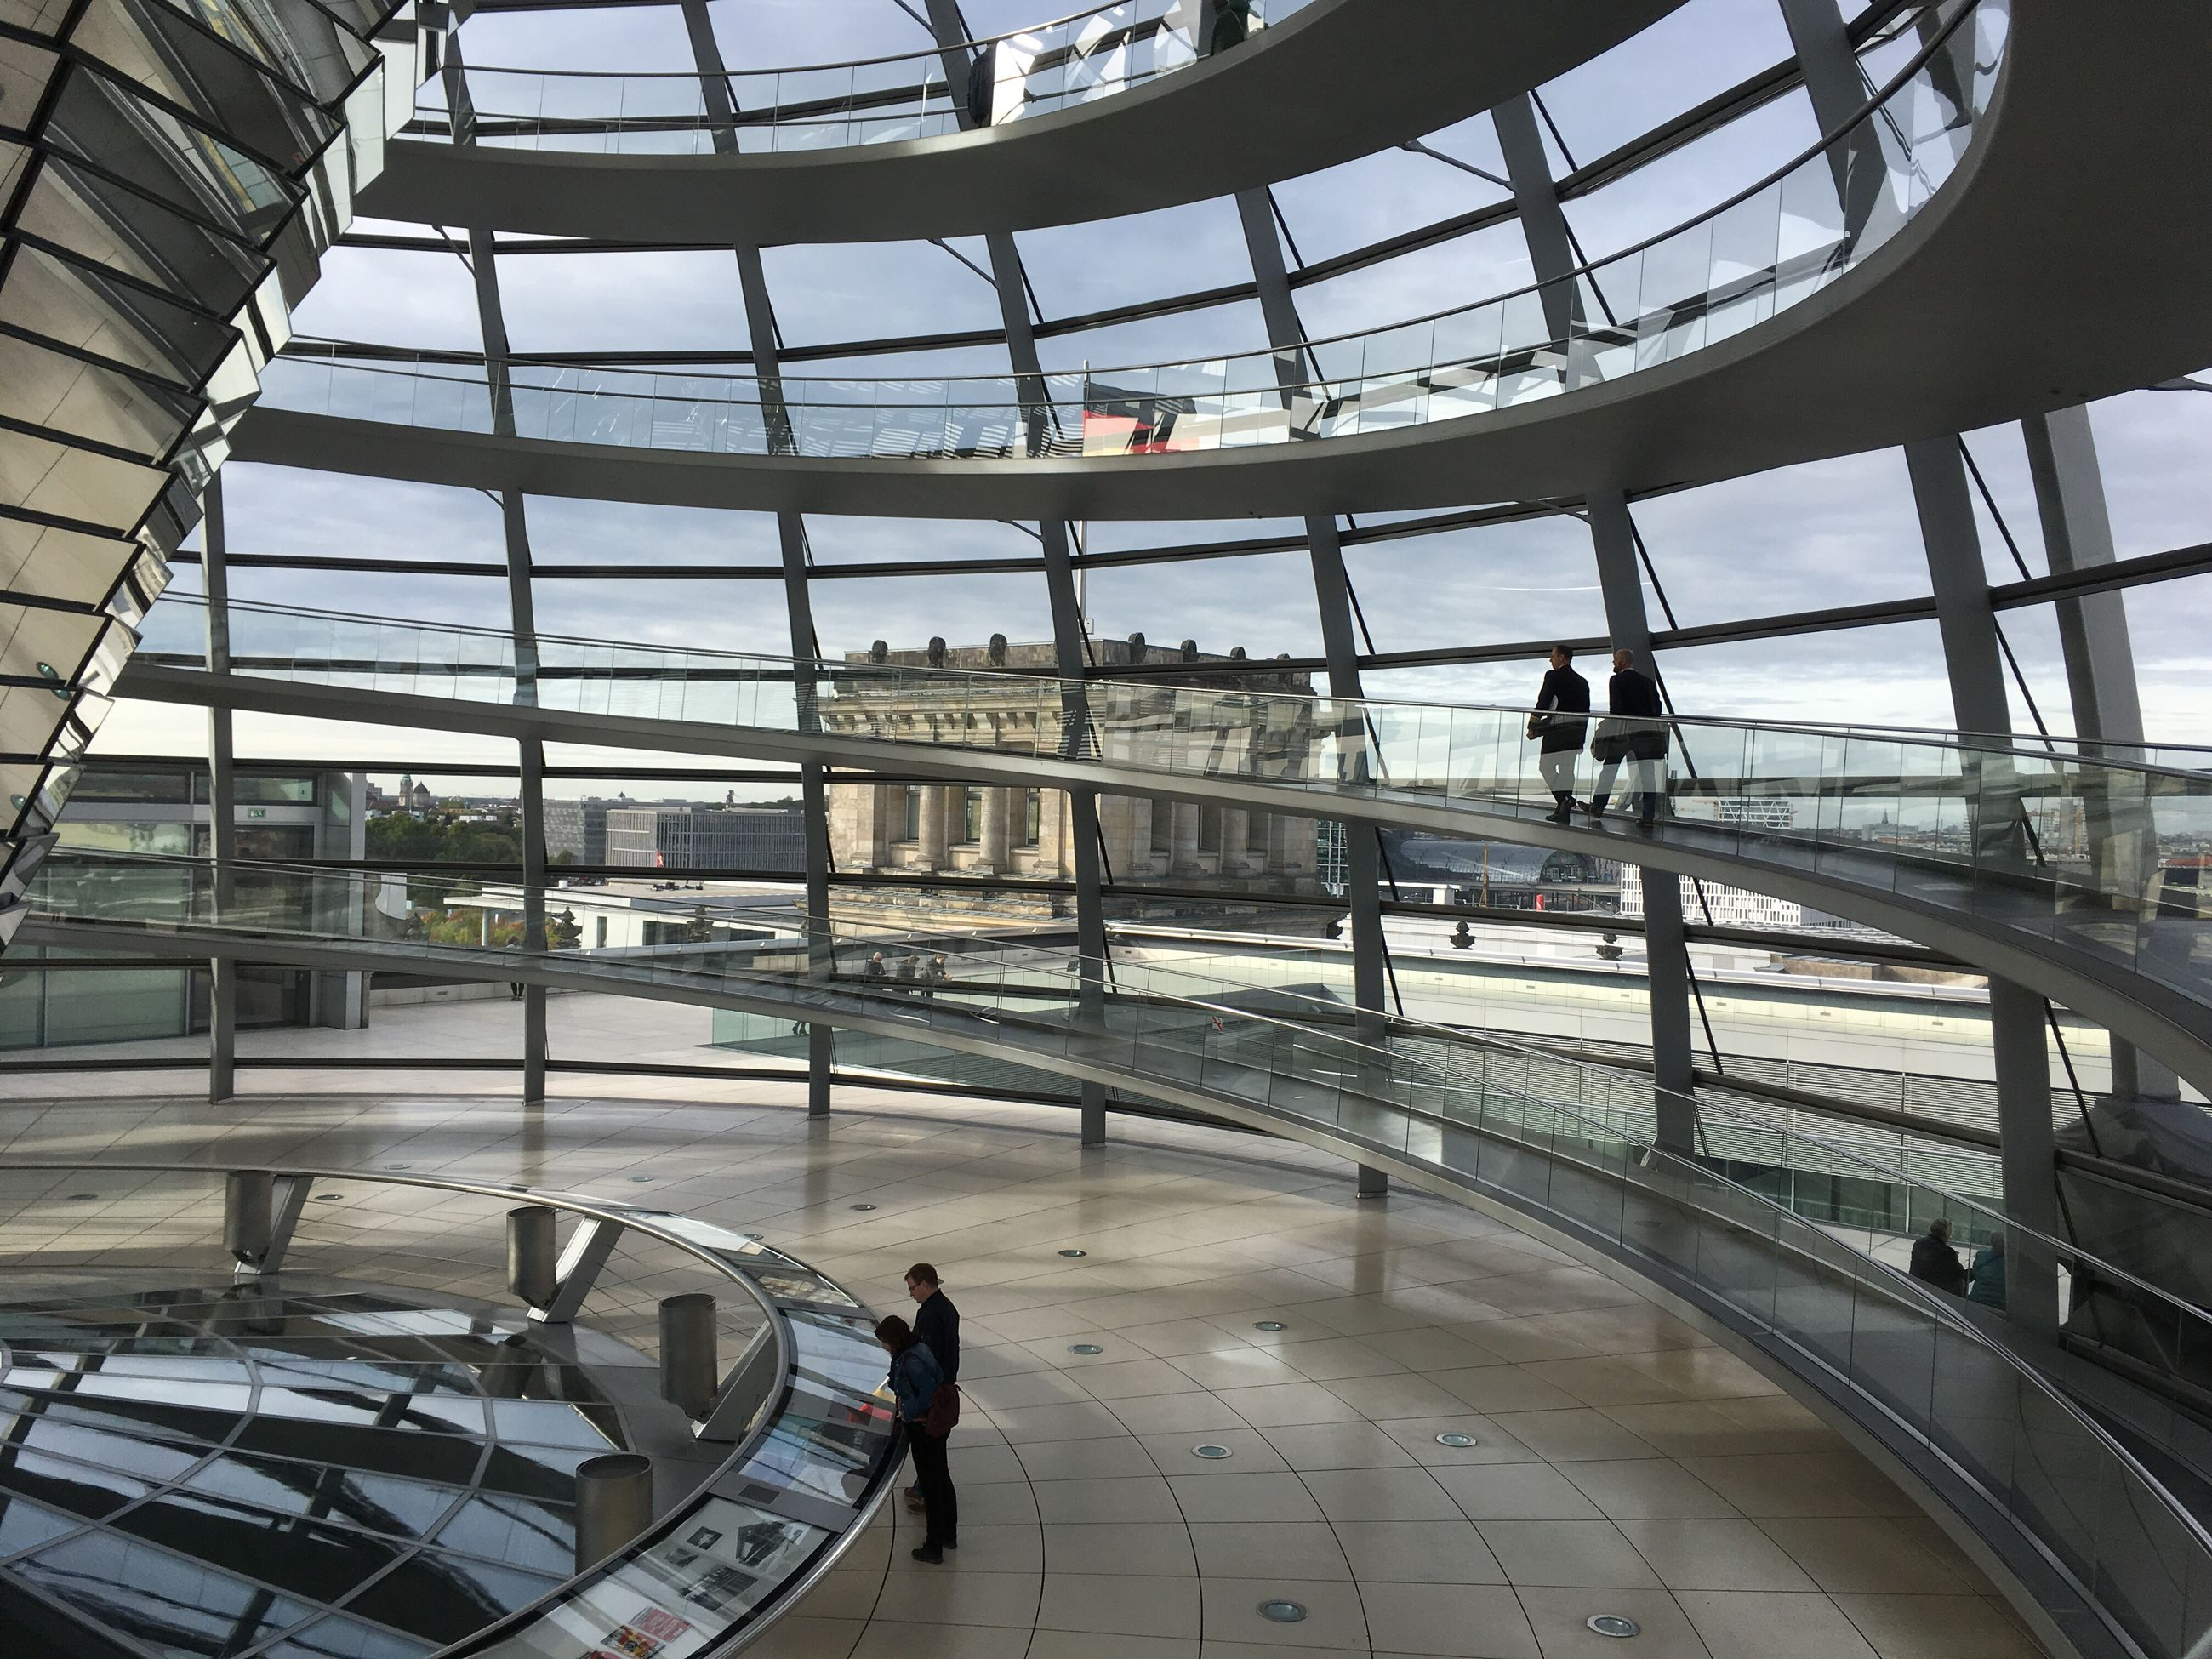 architecture, real people, built structure, glass - material, men, group of people, lifestyles, indoors, travel, day, transparent, incidental people, people, adult, tourism, women, travel destinations, leisure activity, transportation, modern